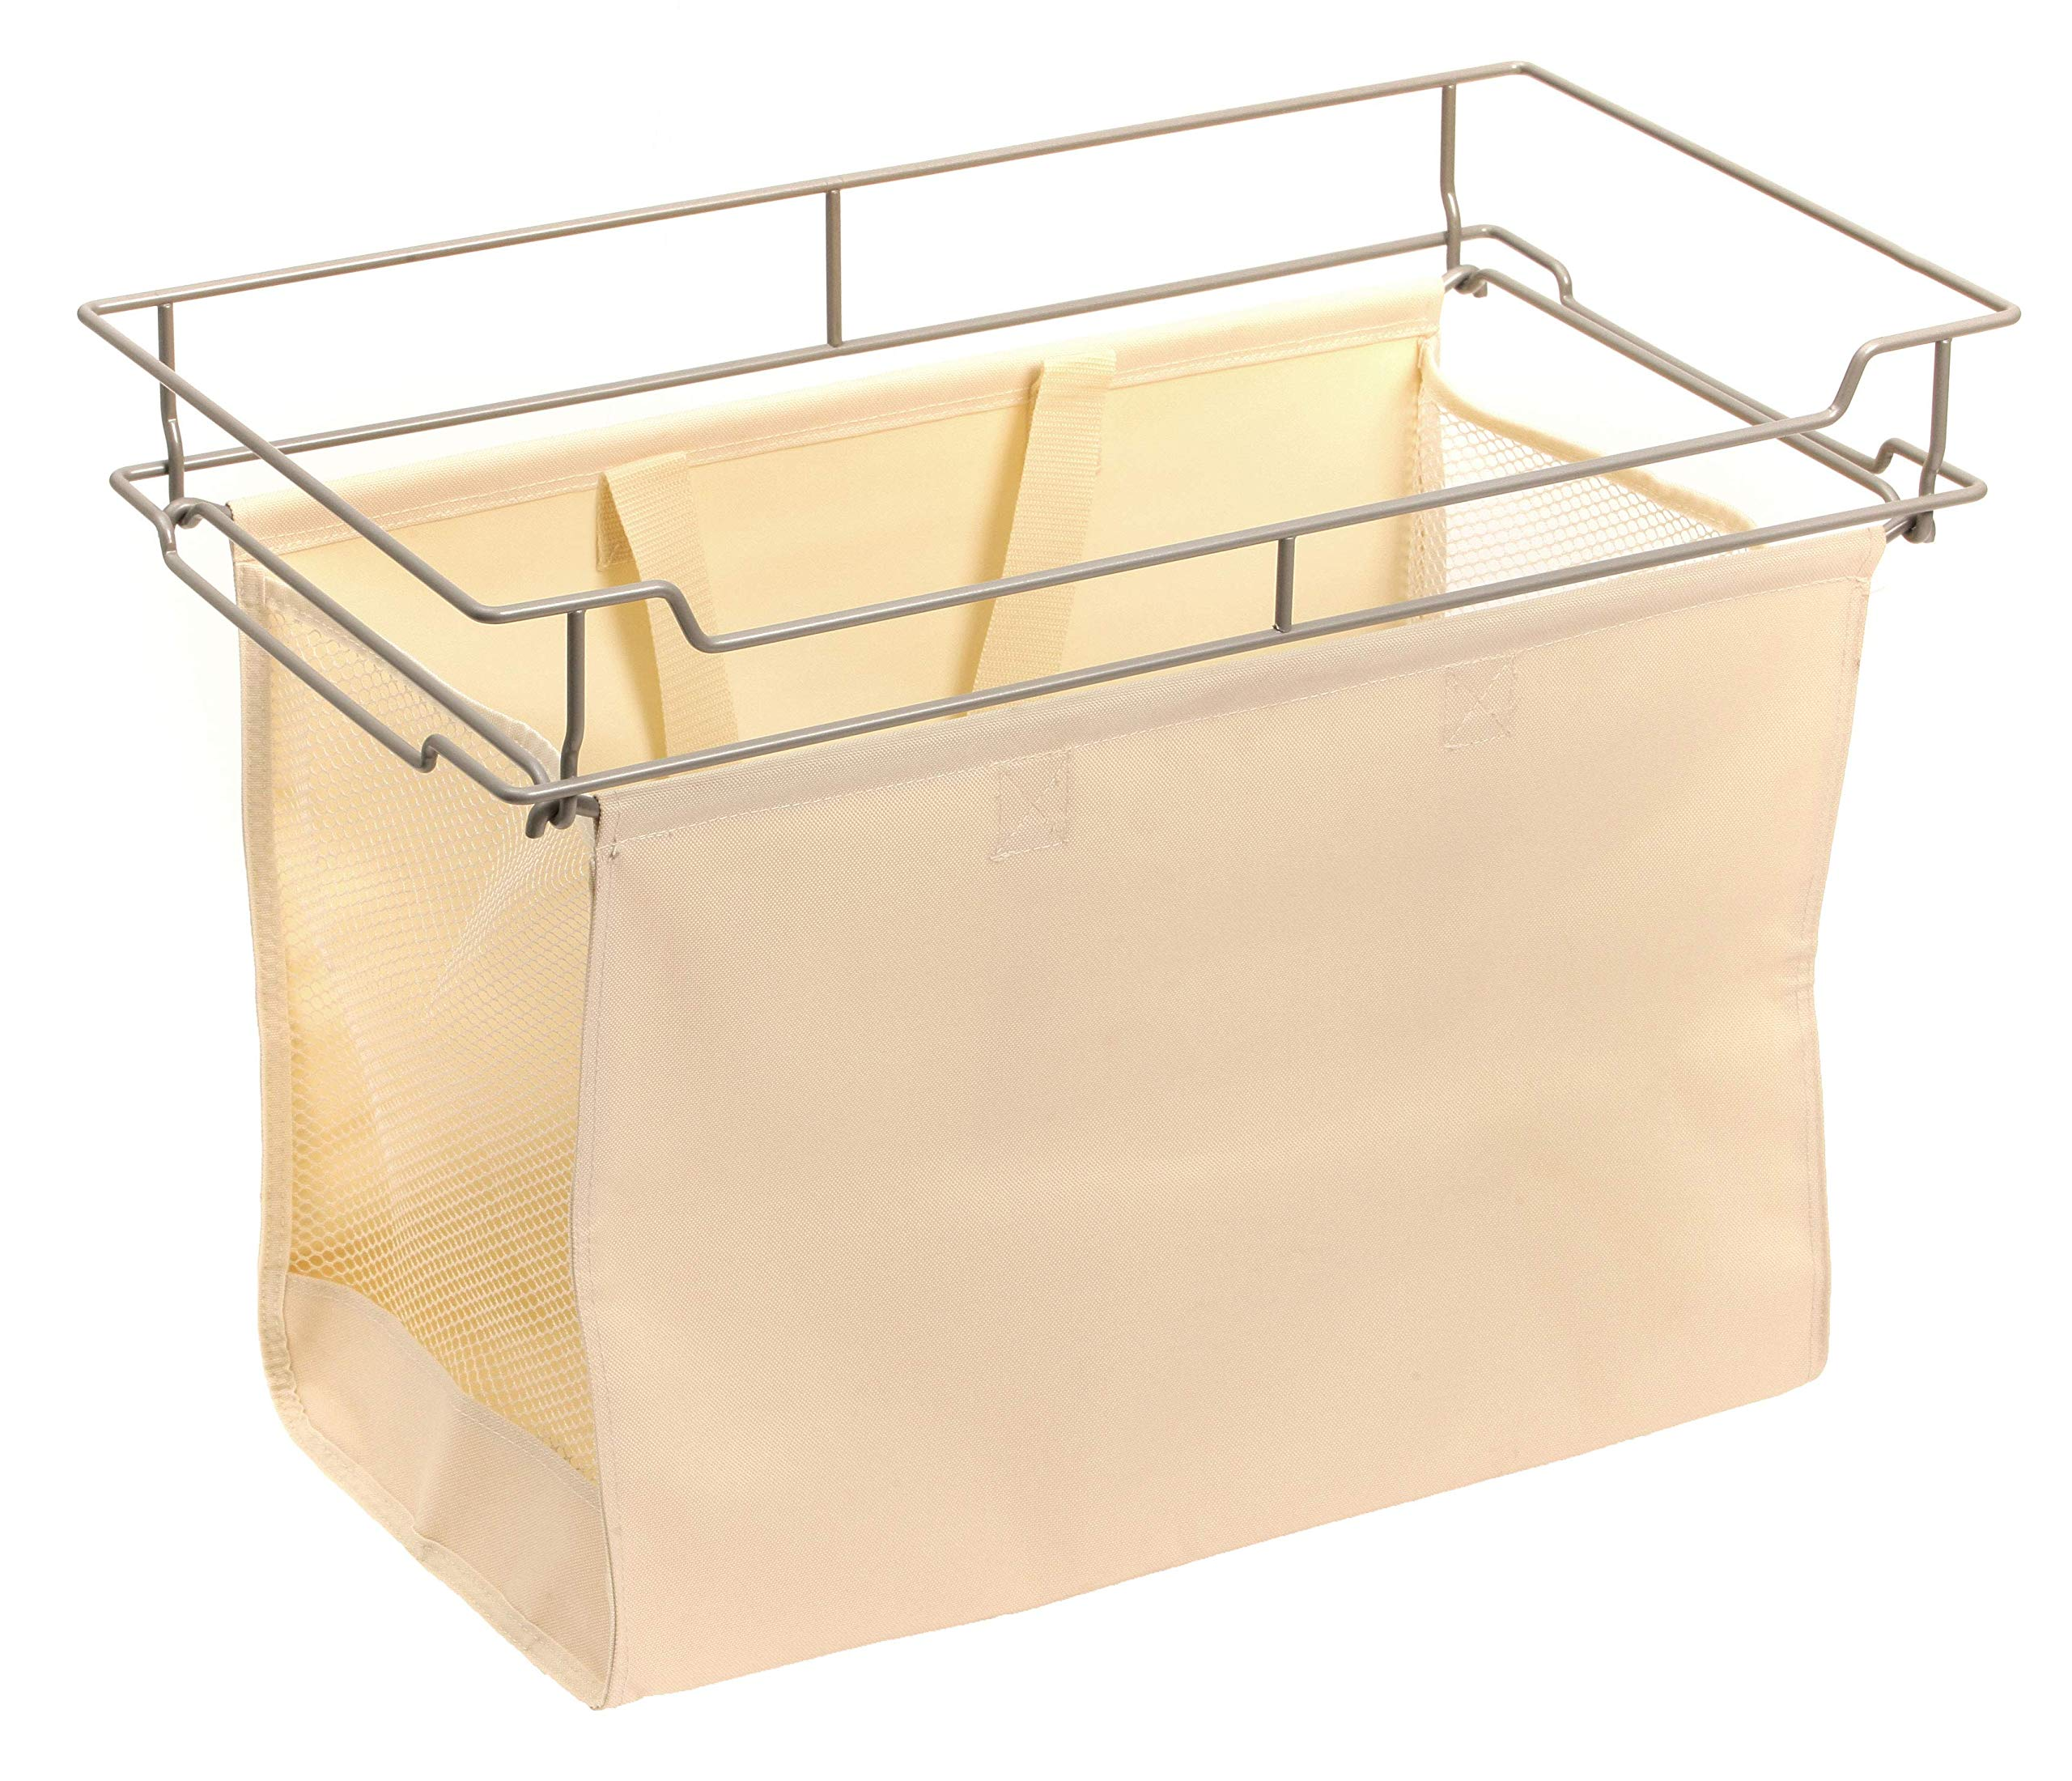 Easy Track Sliding Canvas Hamper Closet Storage, Off Off White by Easy Track